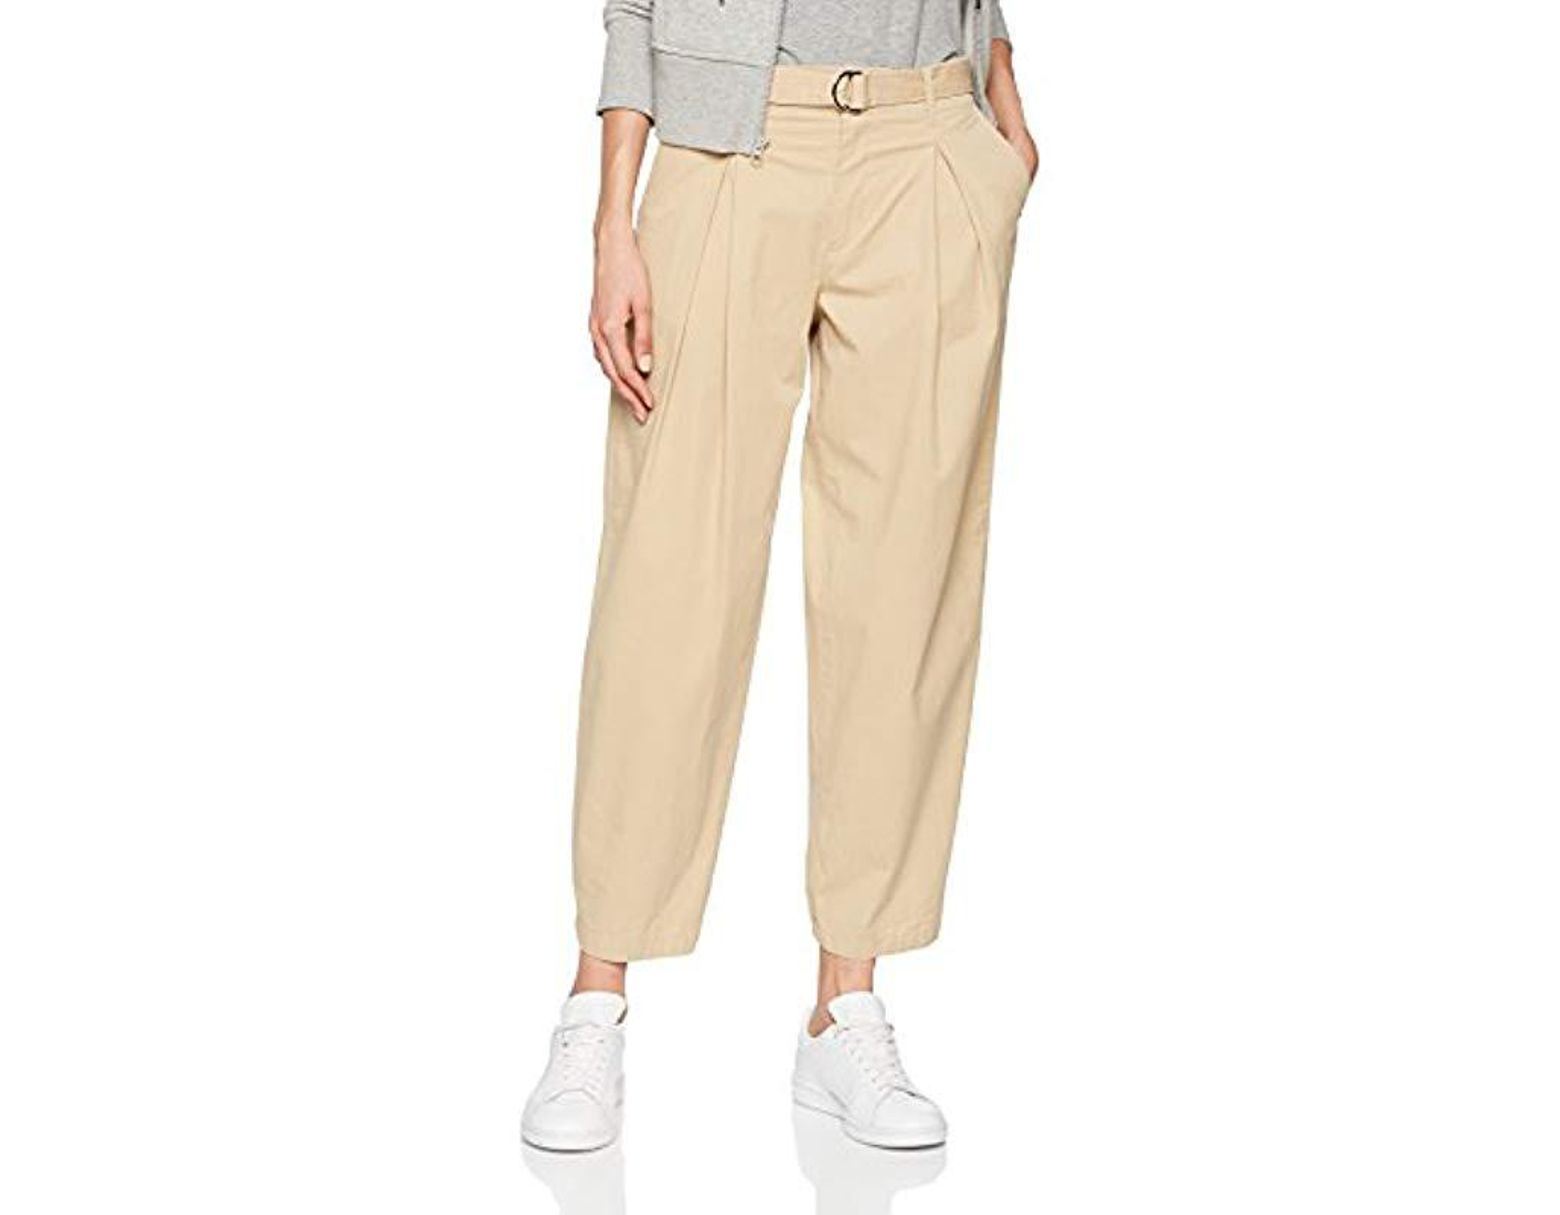 1a851d25d Filippa K Madison Belted Trousers in Natural - Lyst